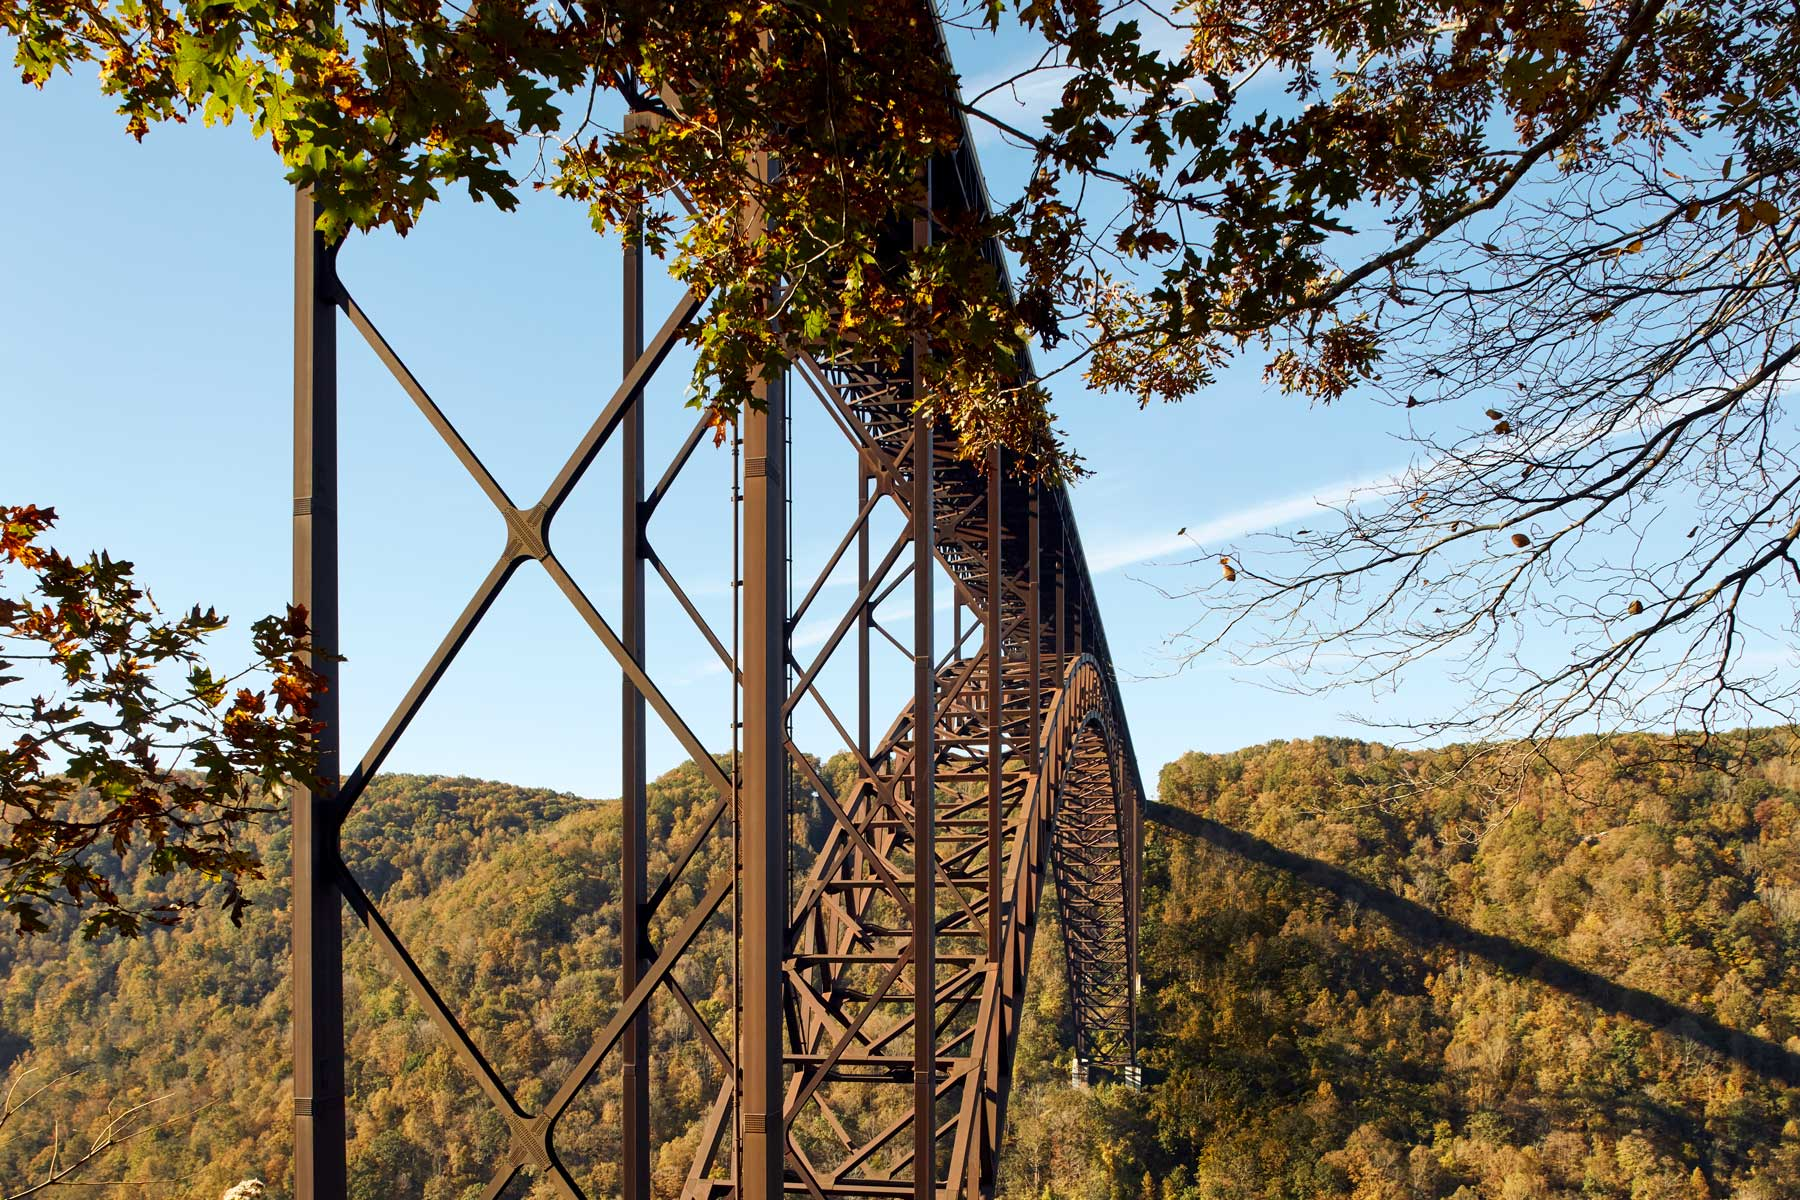 Low angle view of the New River Gorge Bridge in West Virginia, in autumn